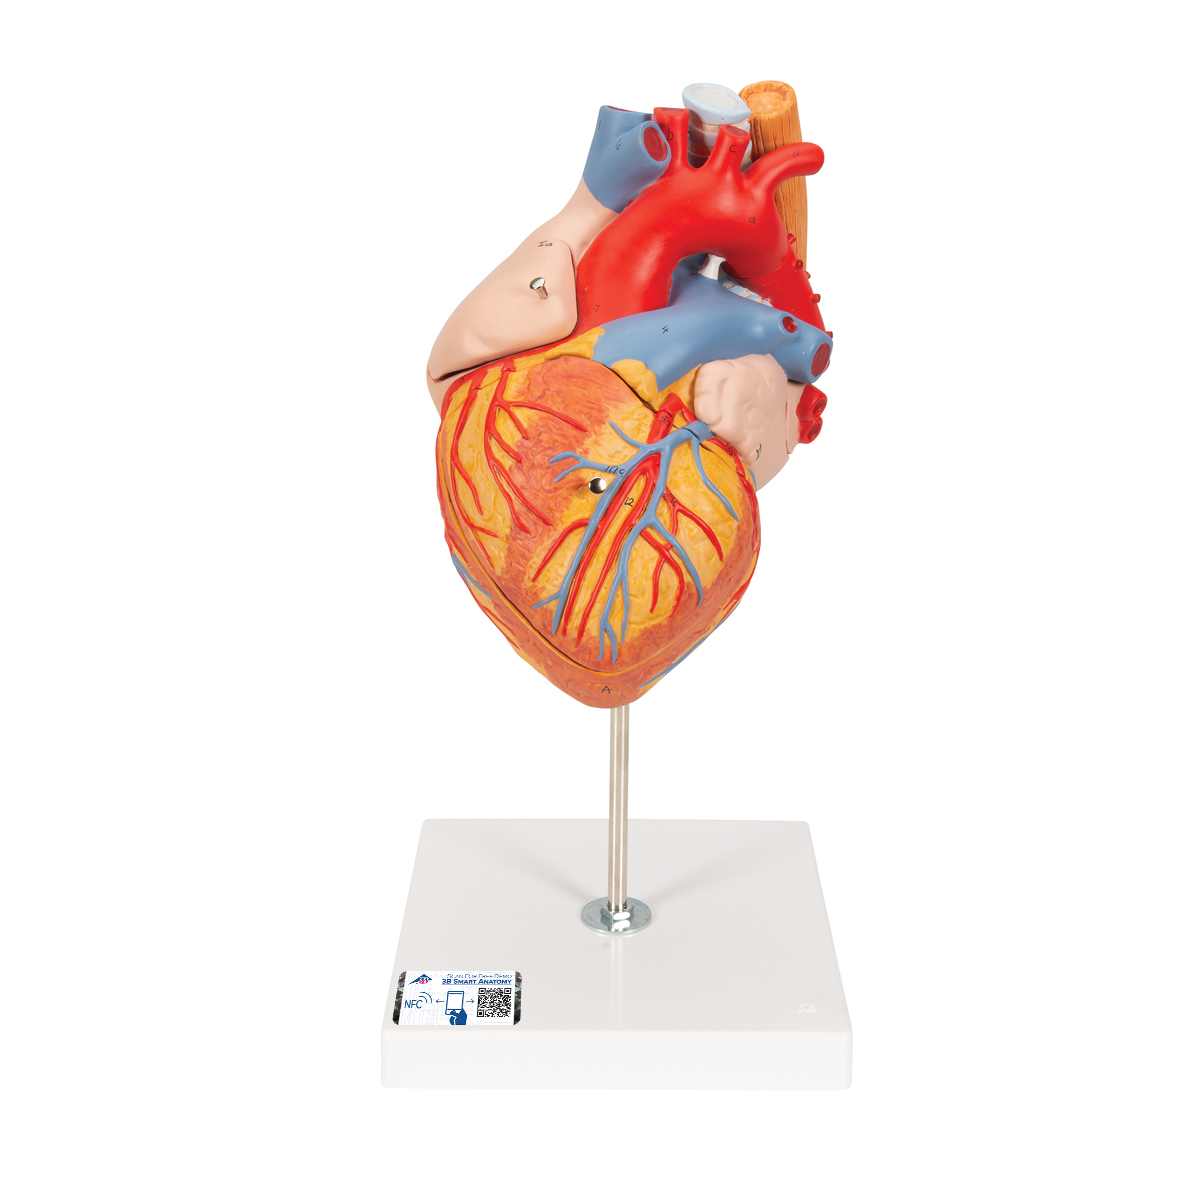 Anatomical Heart Model | Anatomy of the Heart | Heart Model with ...